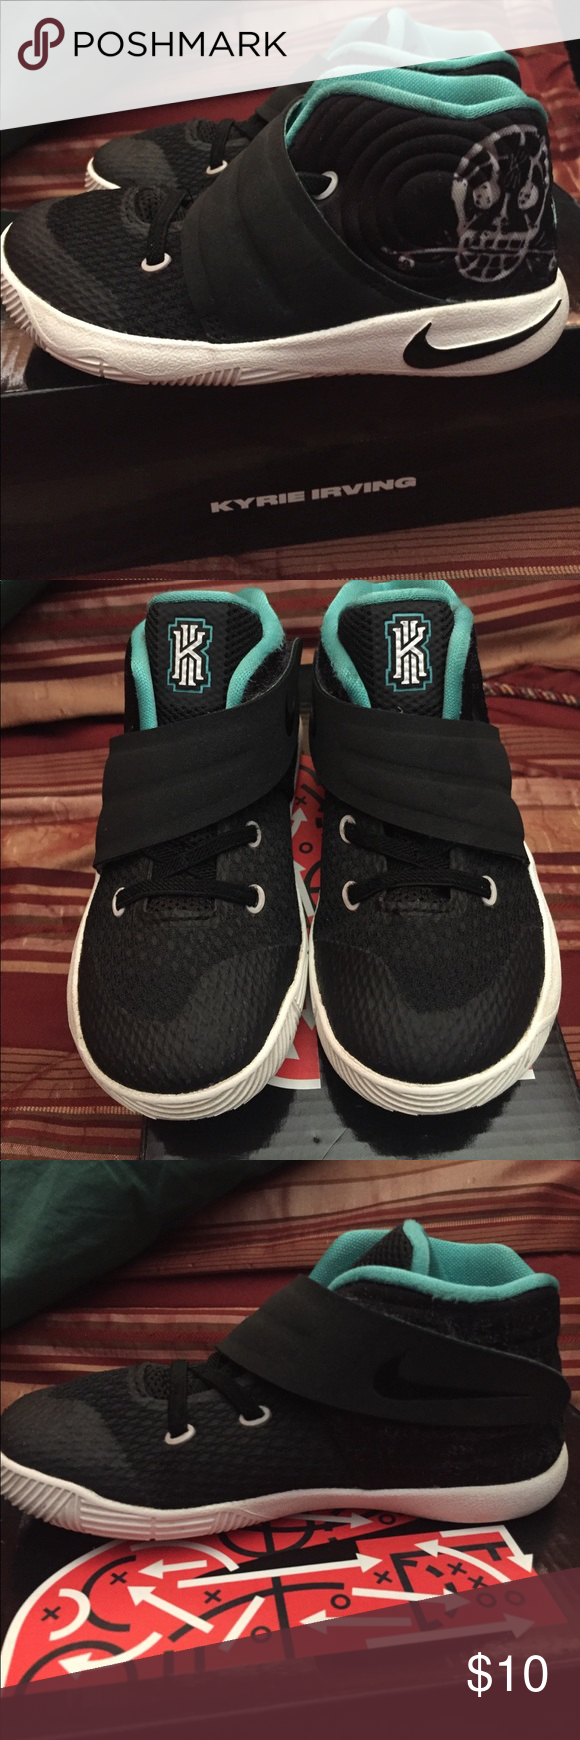 best sneakers 58ebb 1538a Toddler Boys Basketball Shoes Kyrie 2 Toddler Boys Basketball Shoes Kyrie 2  used. There black, white sole and a white skull 💀 on the side with Teal  lining ...